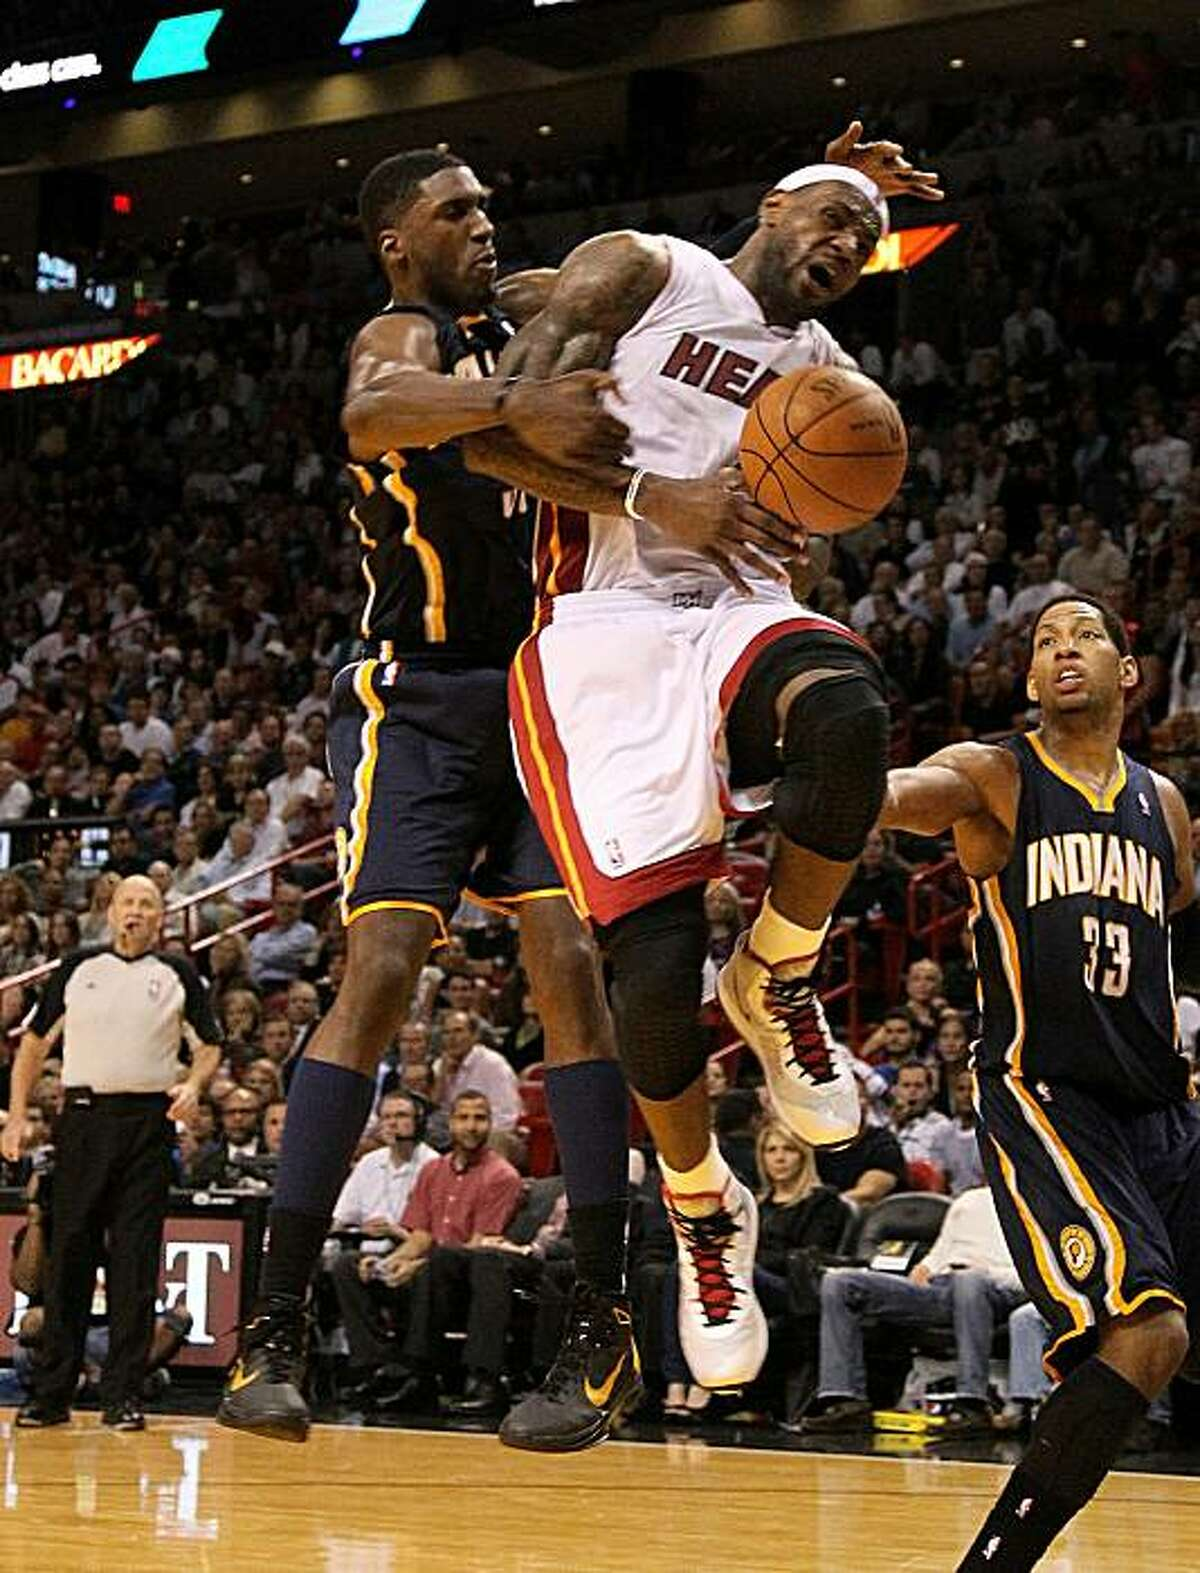 MIAMI, FL - FEBRUARY 08: LeBron James #6 of the Miami Heat is fouled by Roy Hibbert #55 of the Indiana Pacers during a game at American Airlines Arena on February 8, 2011 in Miami, Florida. NOTE TO USER: User expressly acknowledges and agrees that, by downloading and/or using this Photograph, User is consenting to the terms and conditions of the Getty Images License Agreement.